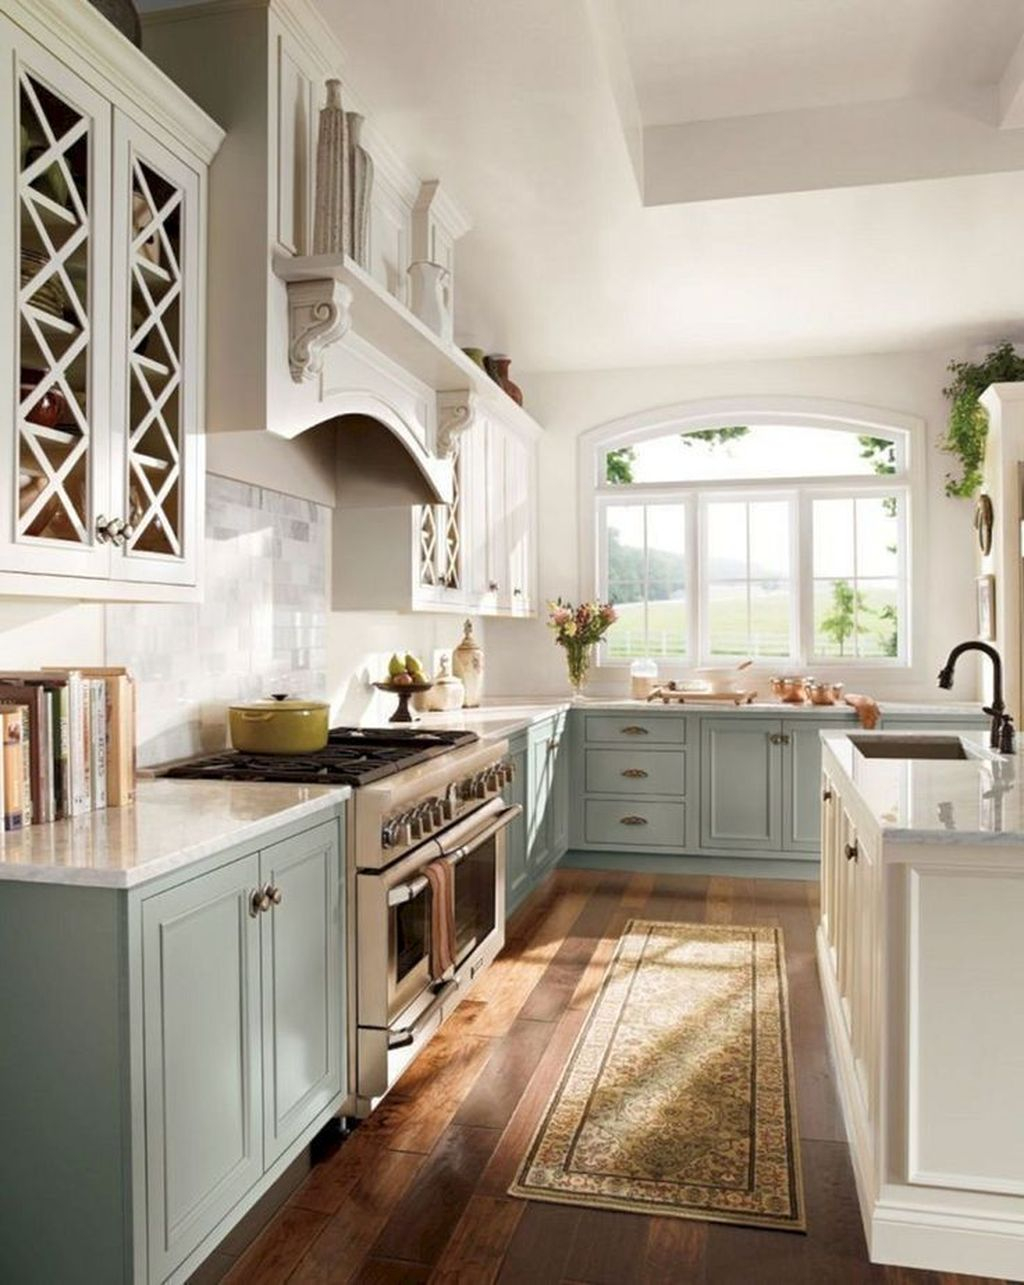 Incredible Small Kitchens Design Ideas That Space Saving 37